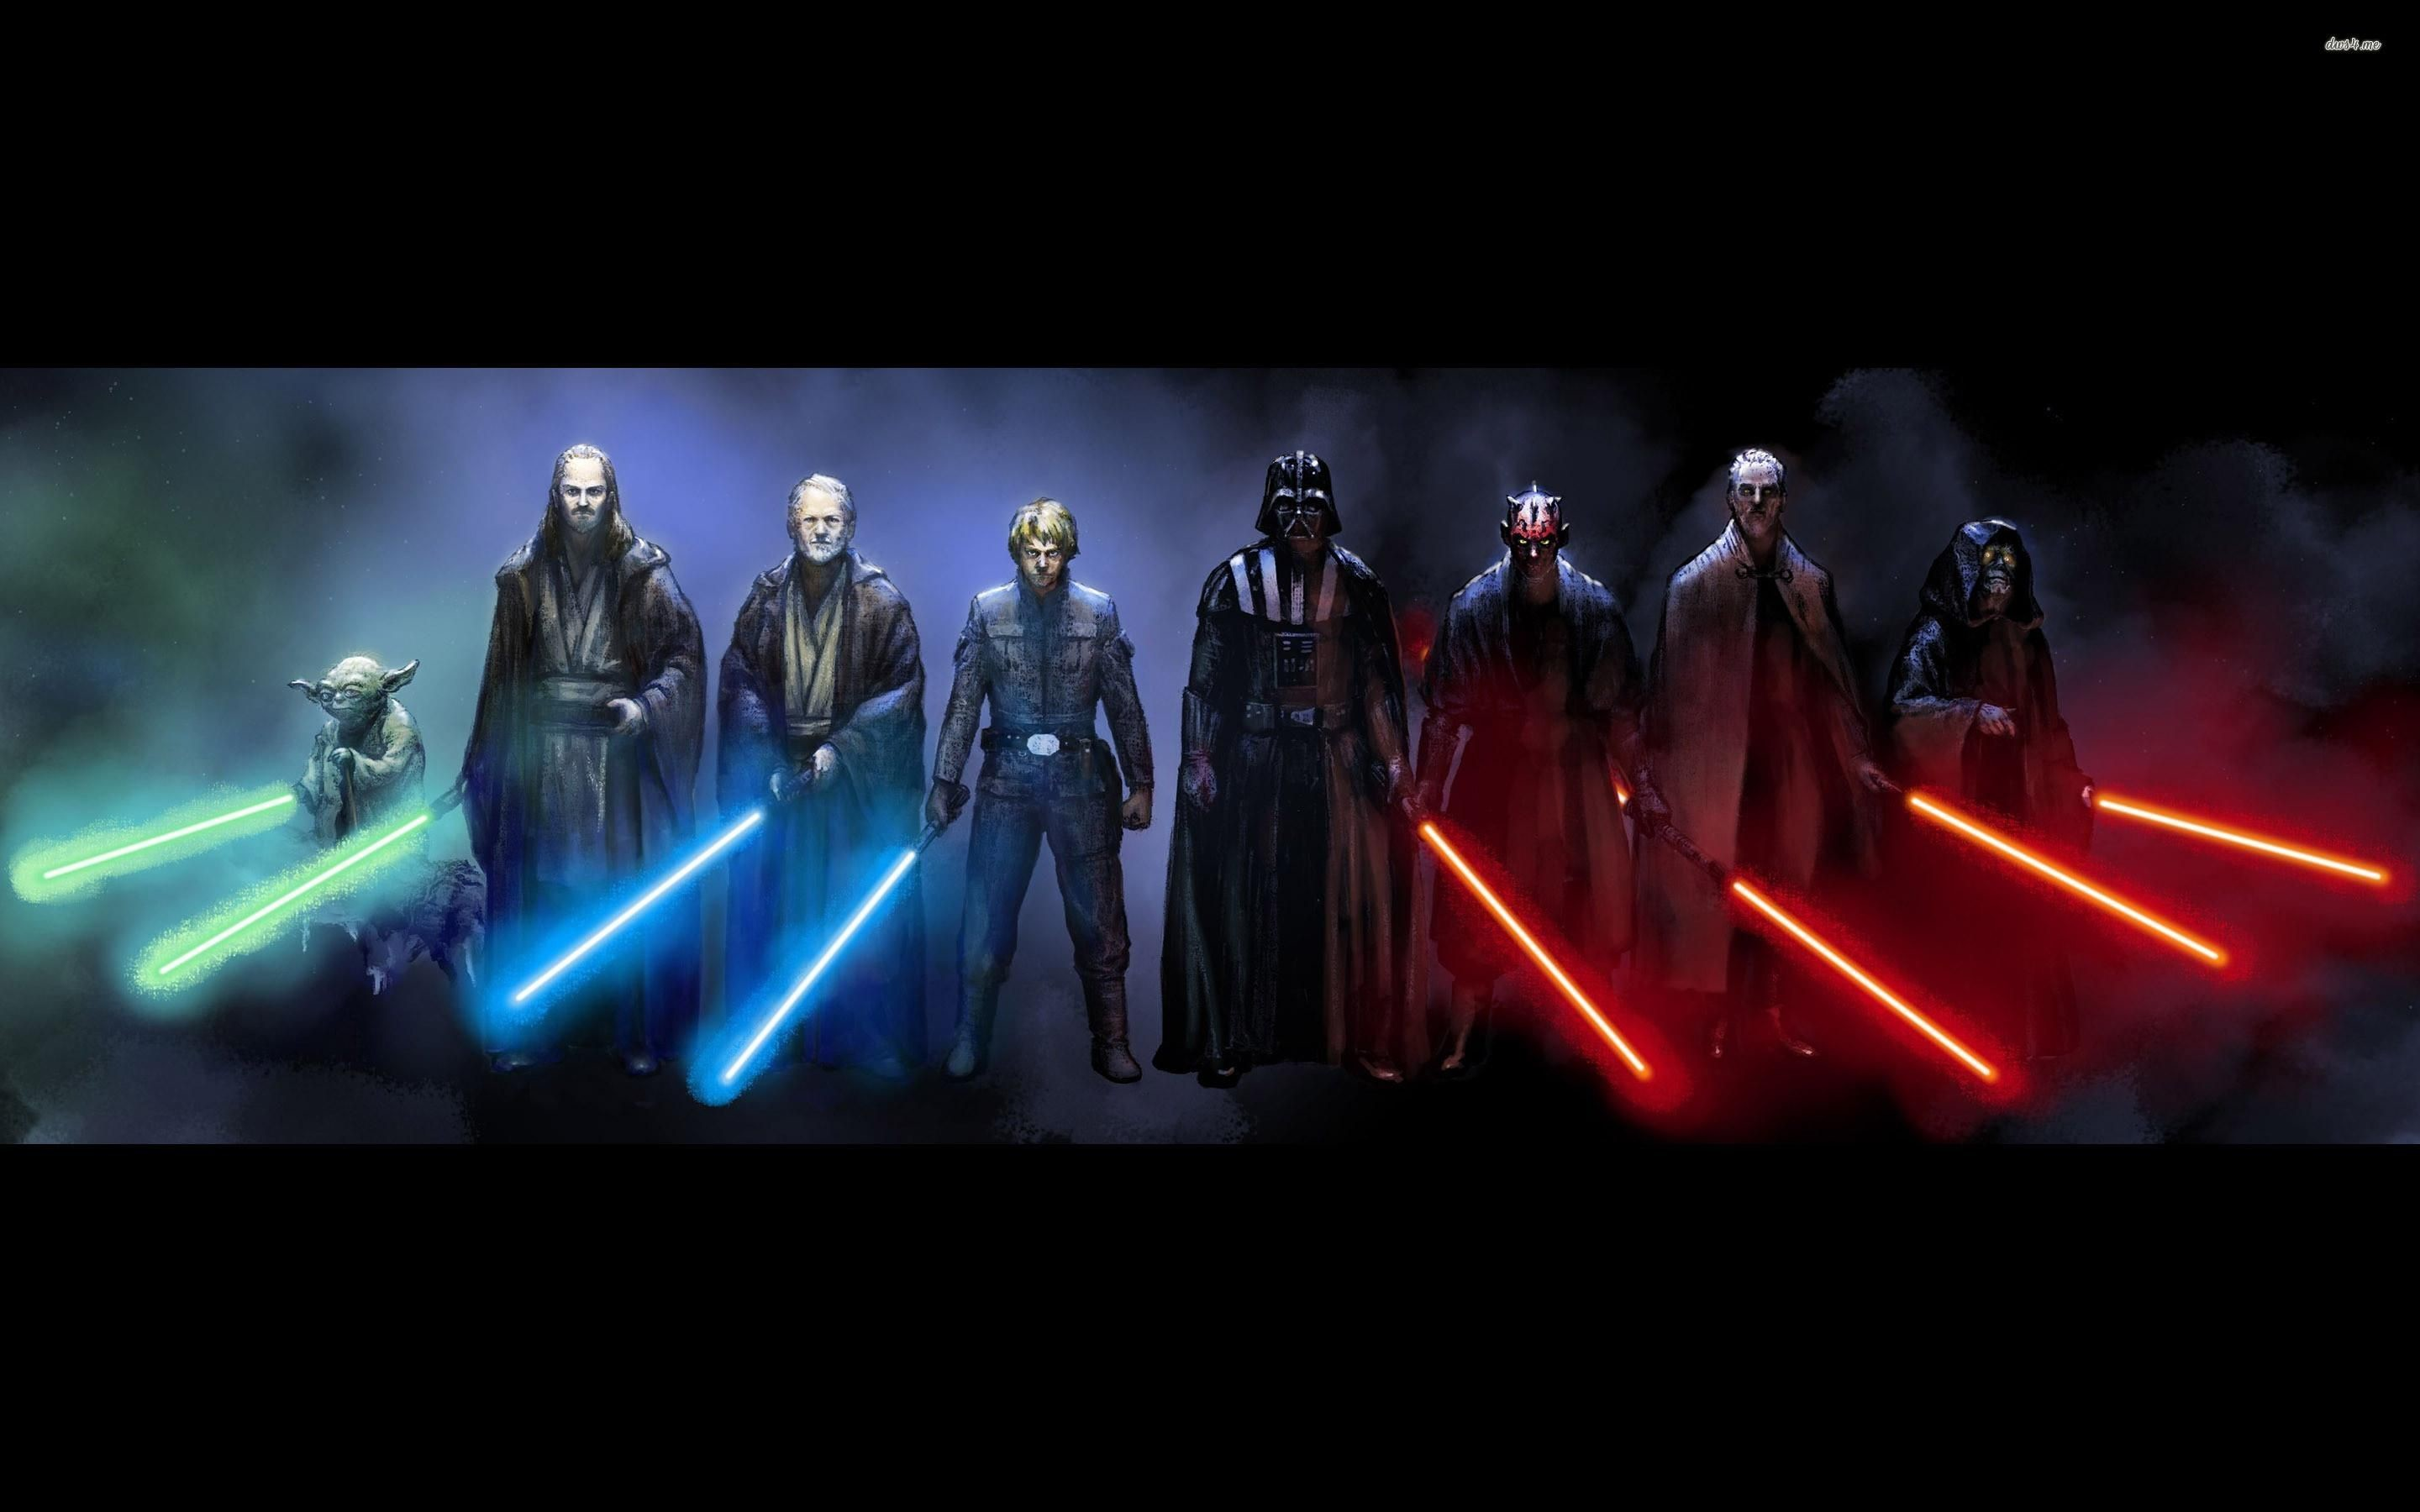 2880x1800 Star Wars Sith Wallpaper Desktop Background